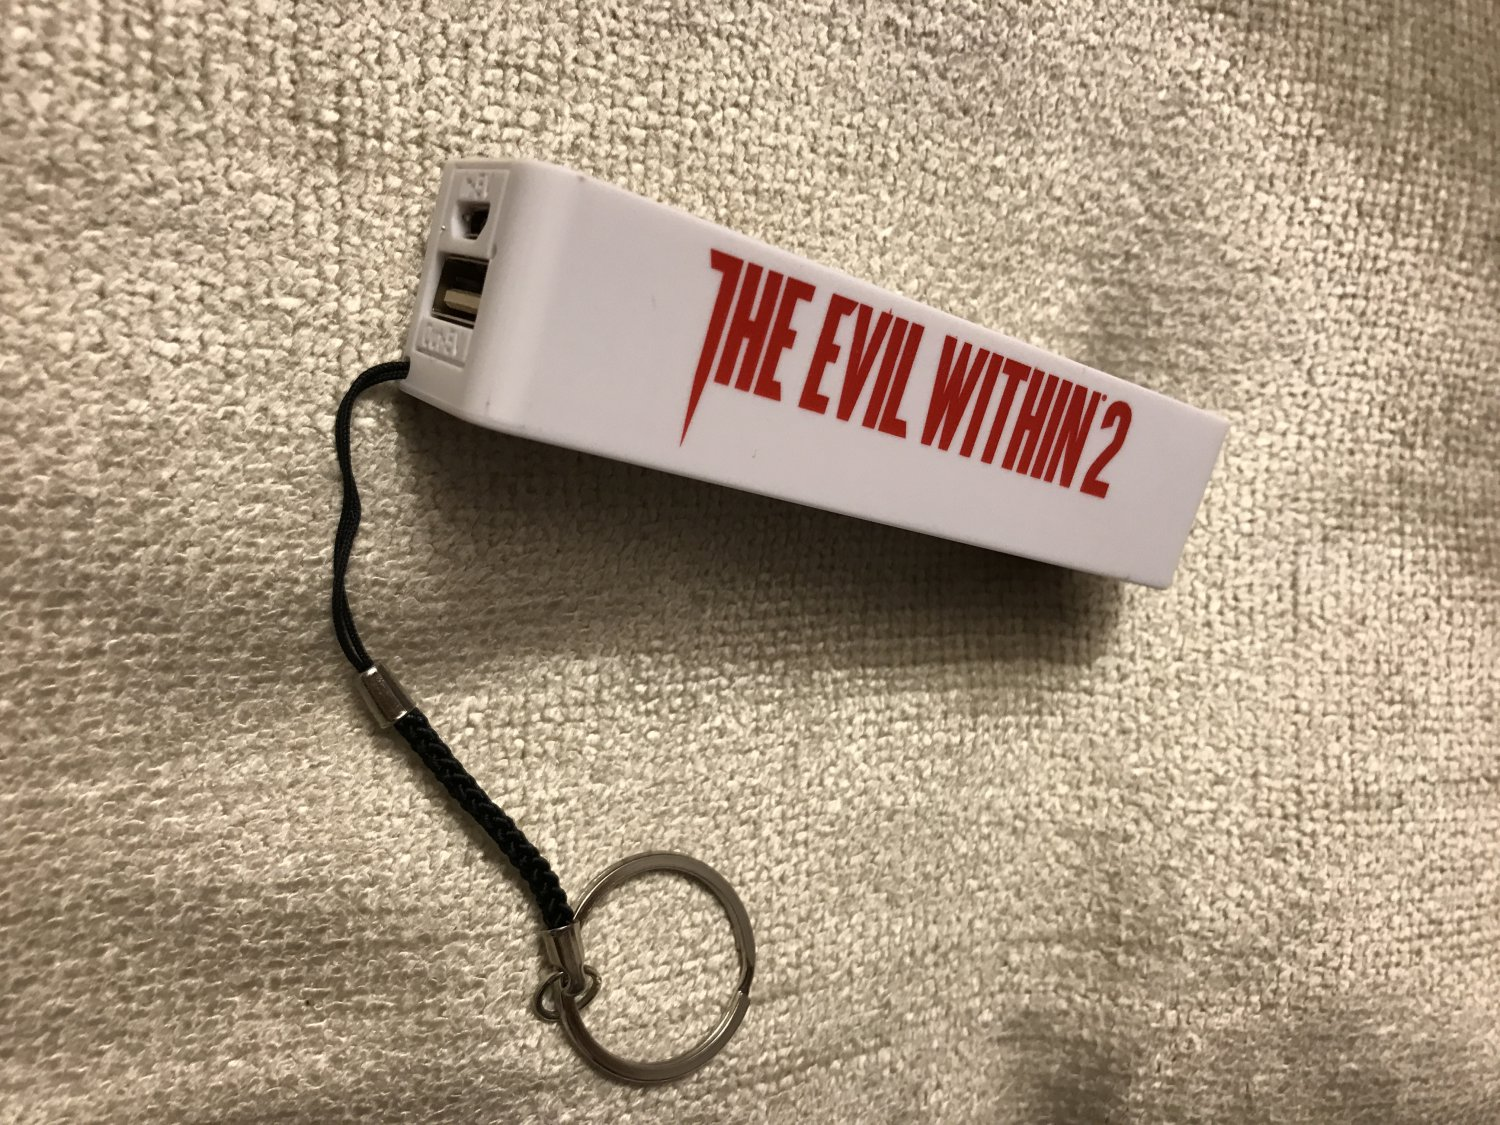 E3 2017 - Bethesda The Evil Within 2 battery charger